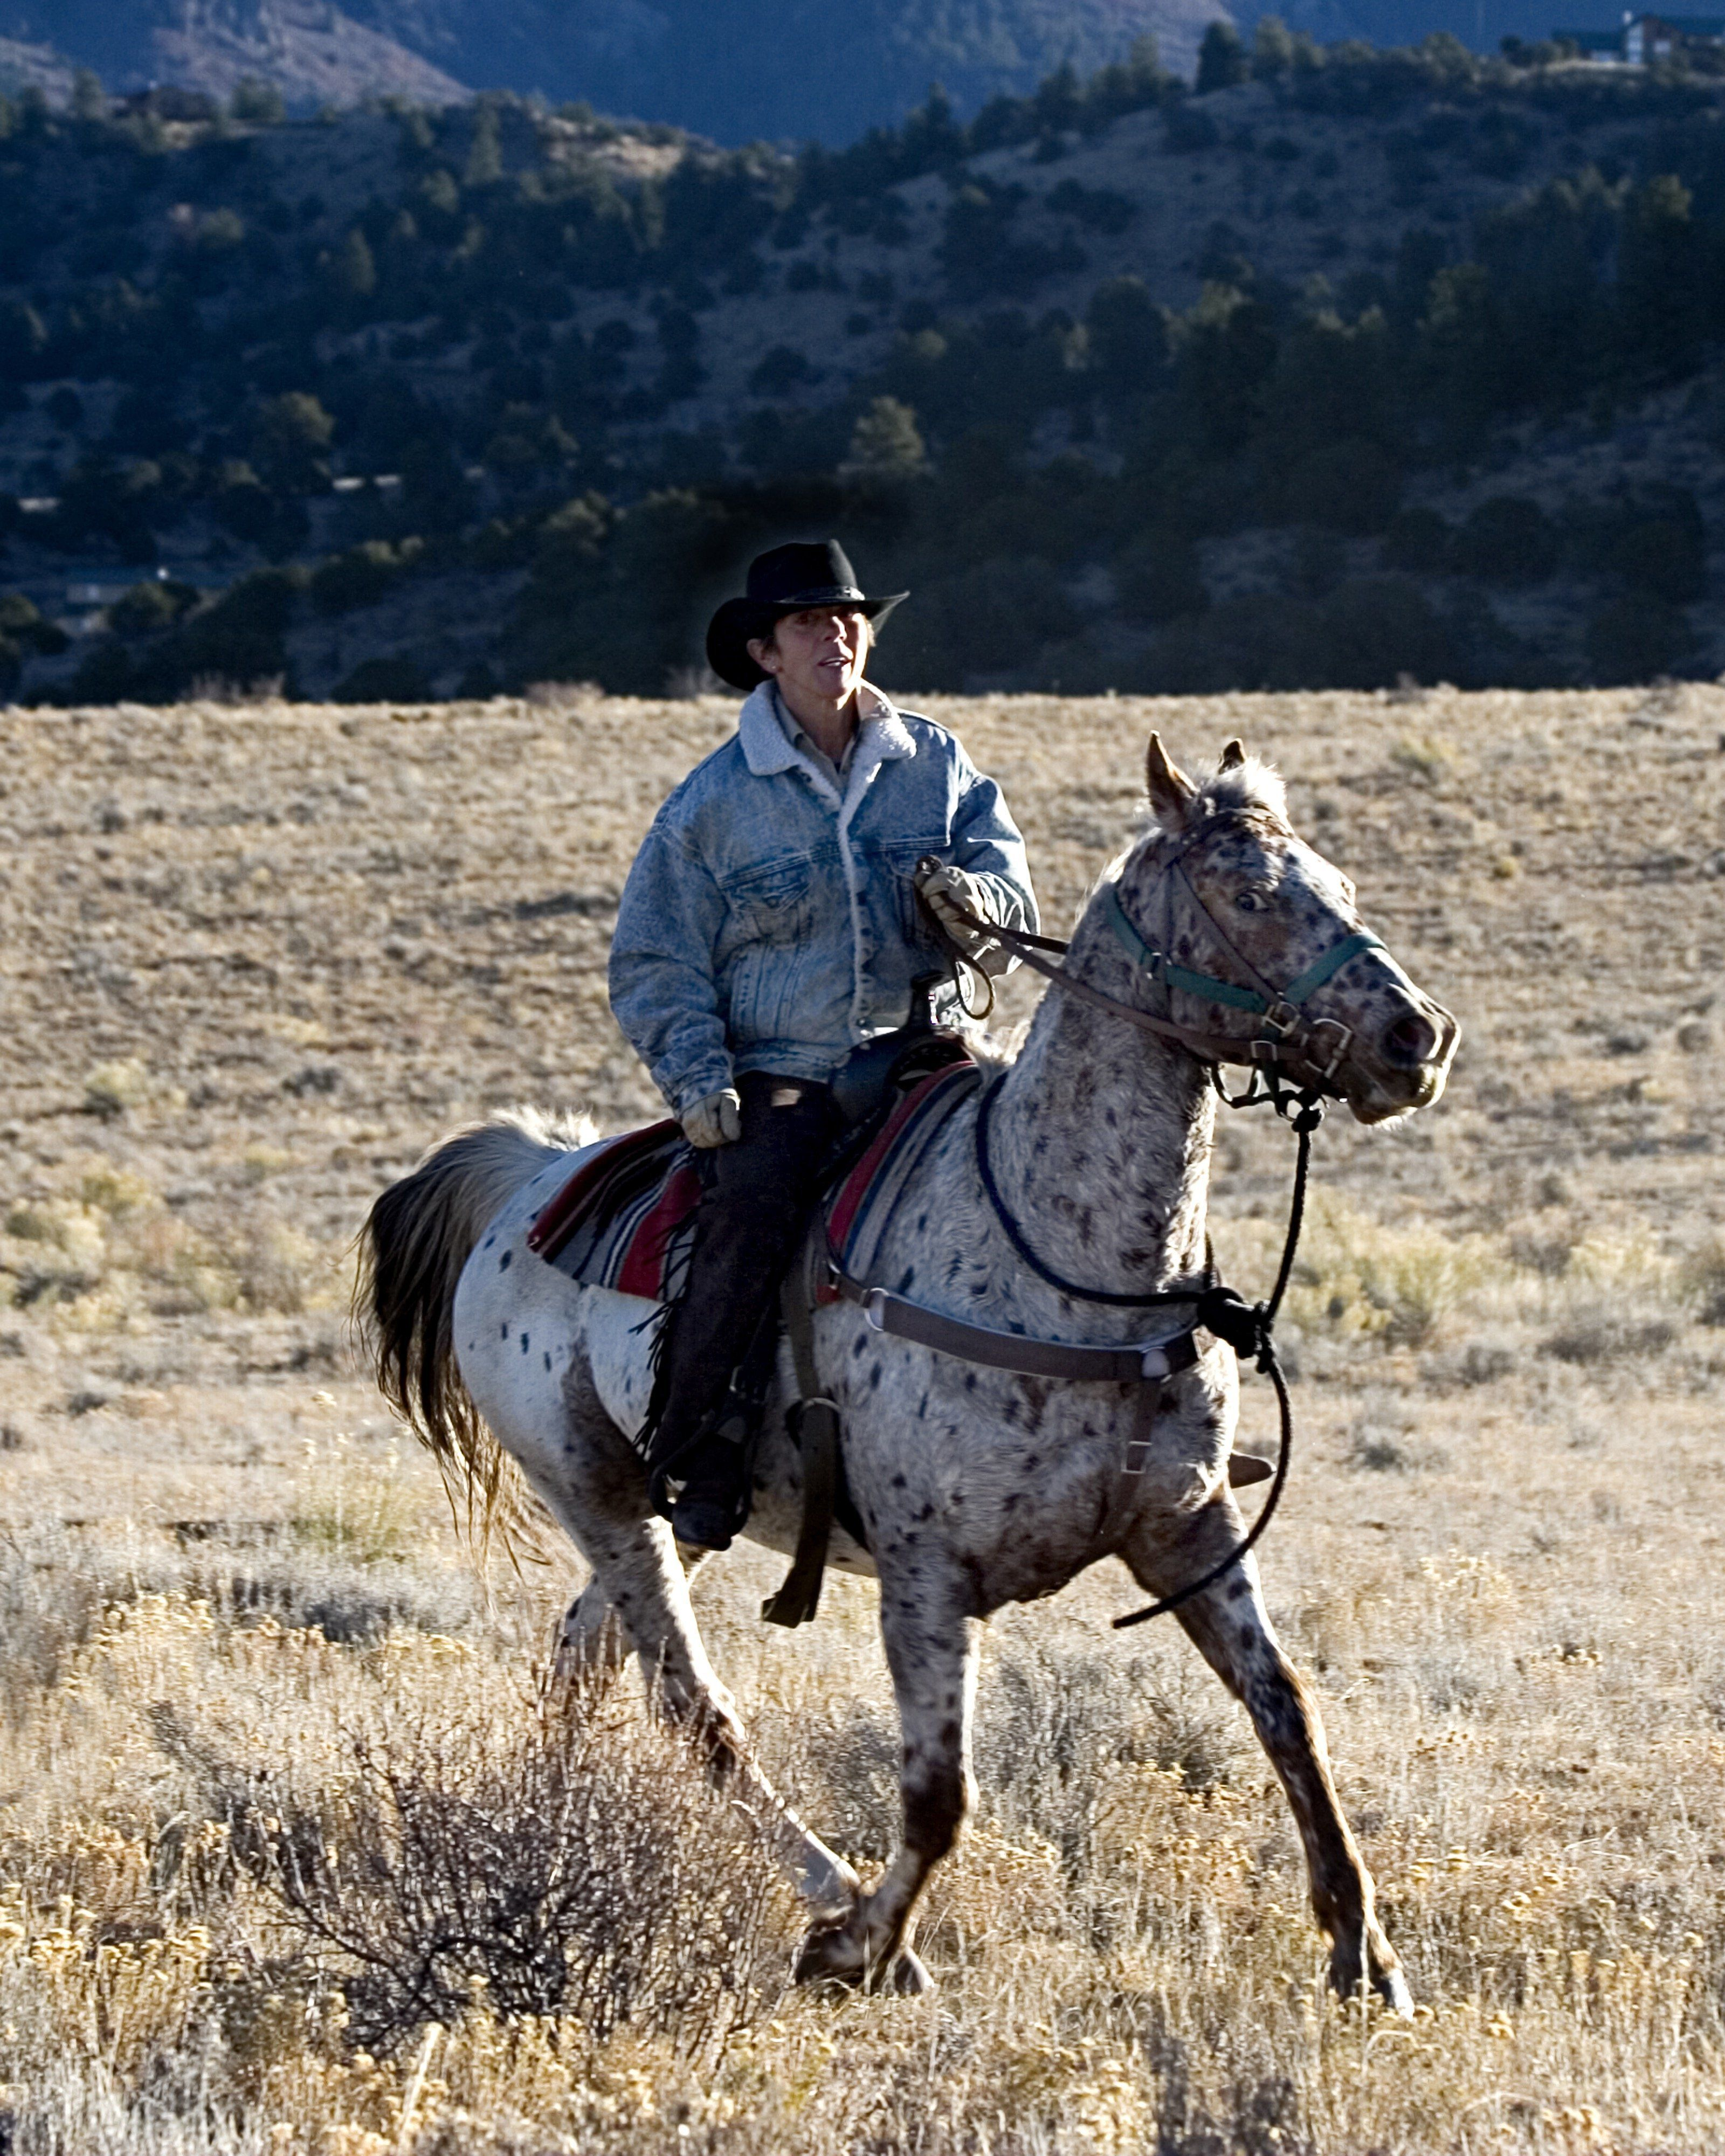 Phyllis rides Spike,an Arabian mare, on a ranch in southern Colorado in 2005.